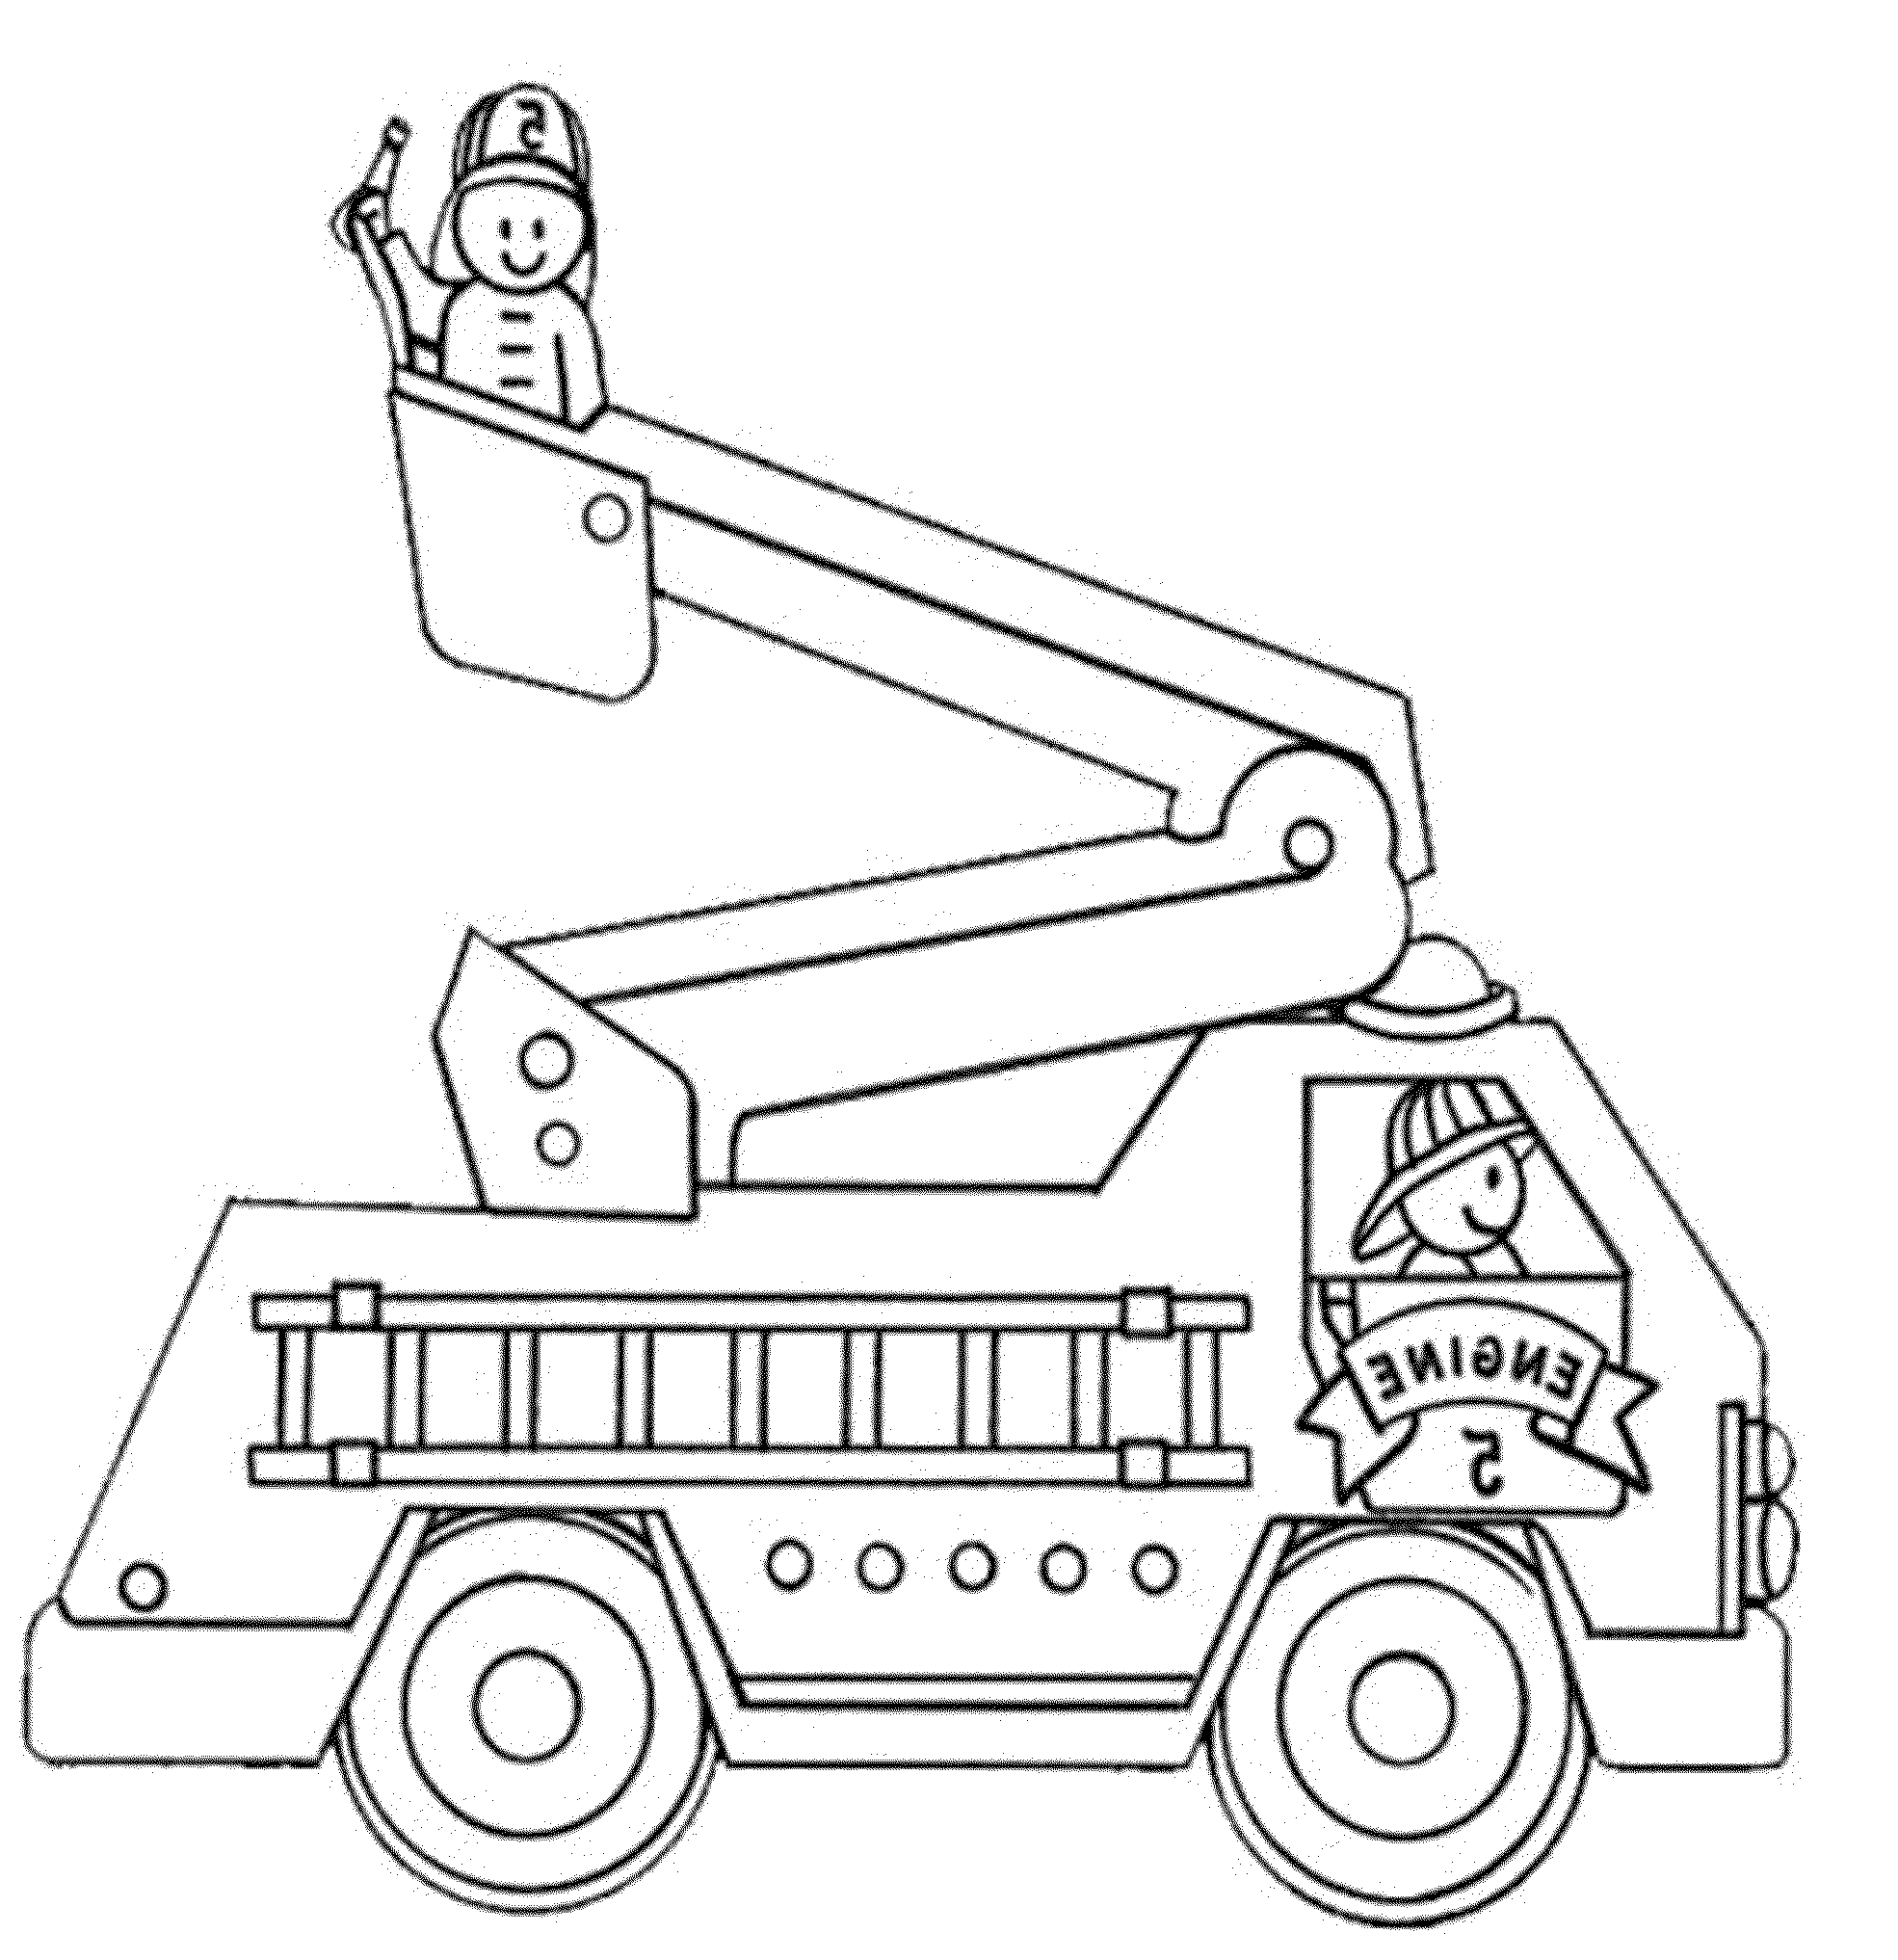 coloring-pages-fire-trucks-online | | BestAppsForKids.com